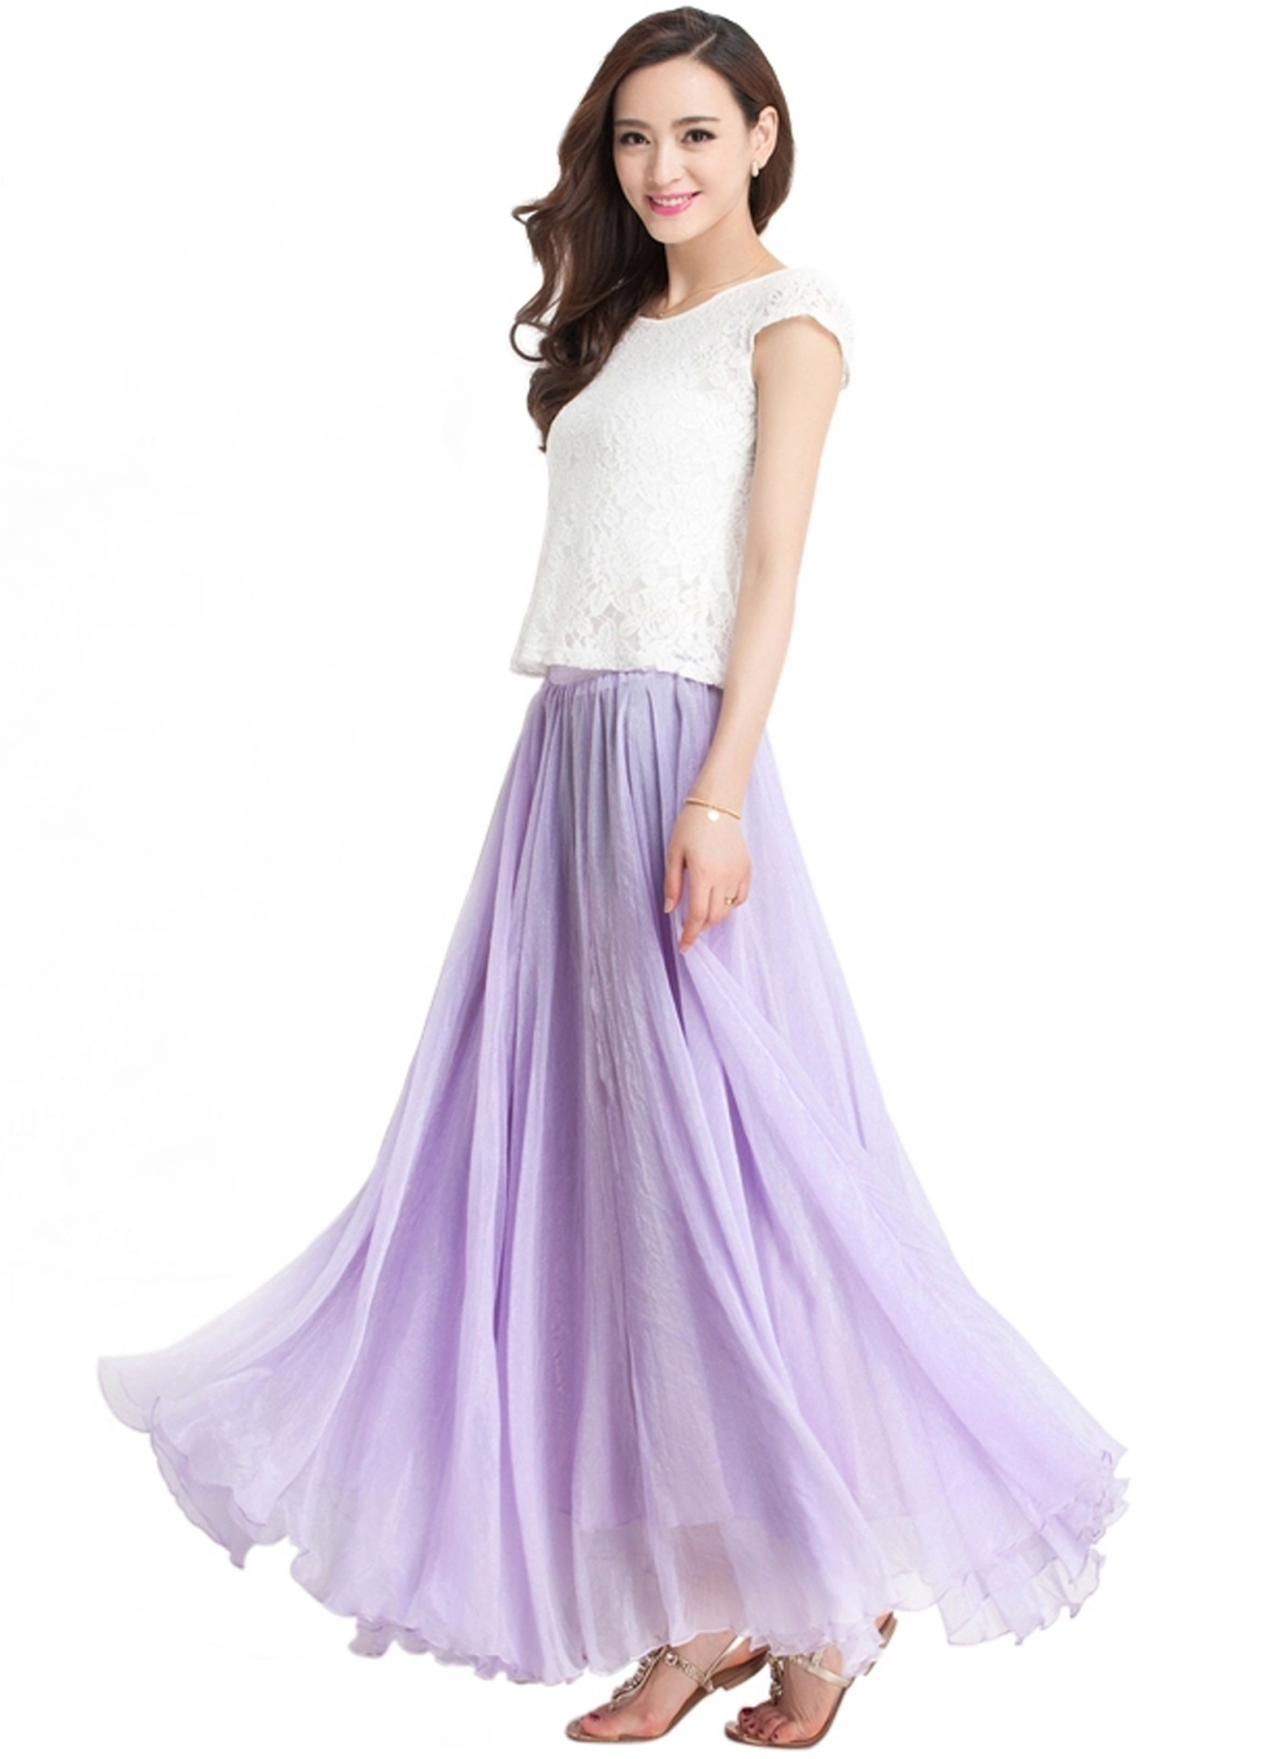 bc3ad9739f Lavender Long Chiffon Skirt Maxi Skirt Ladies Silk Chiffon Dress Plus Sizes  Bridesmaid Sundress Beach Skirt